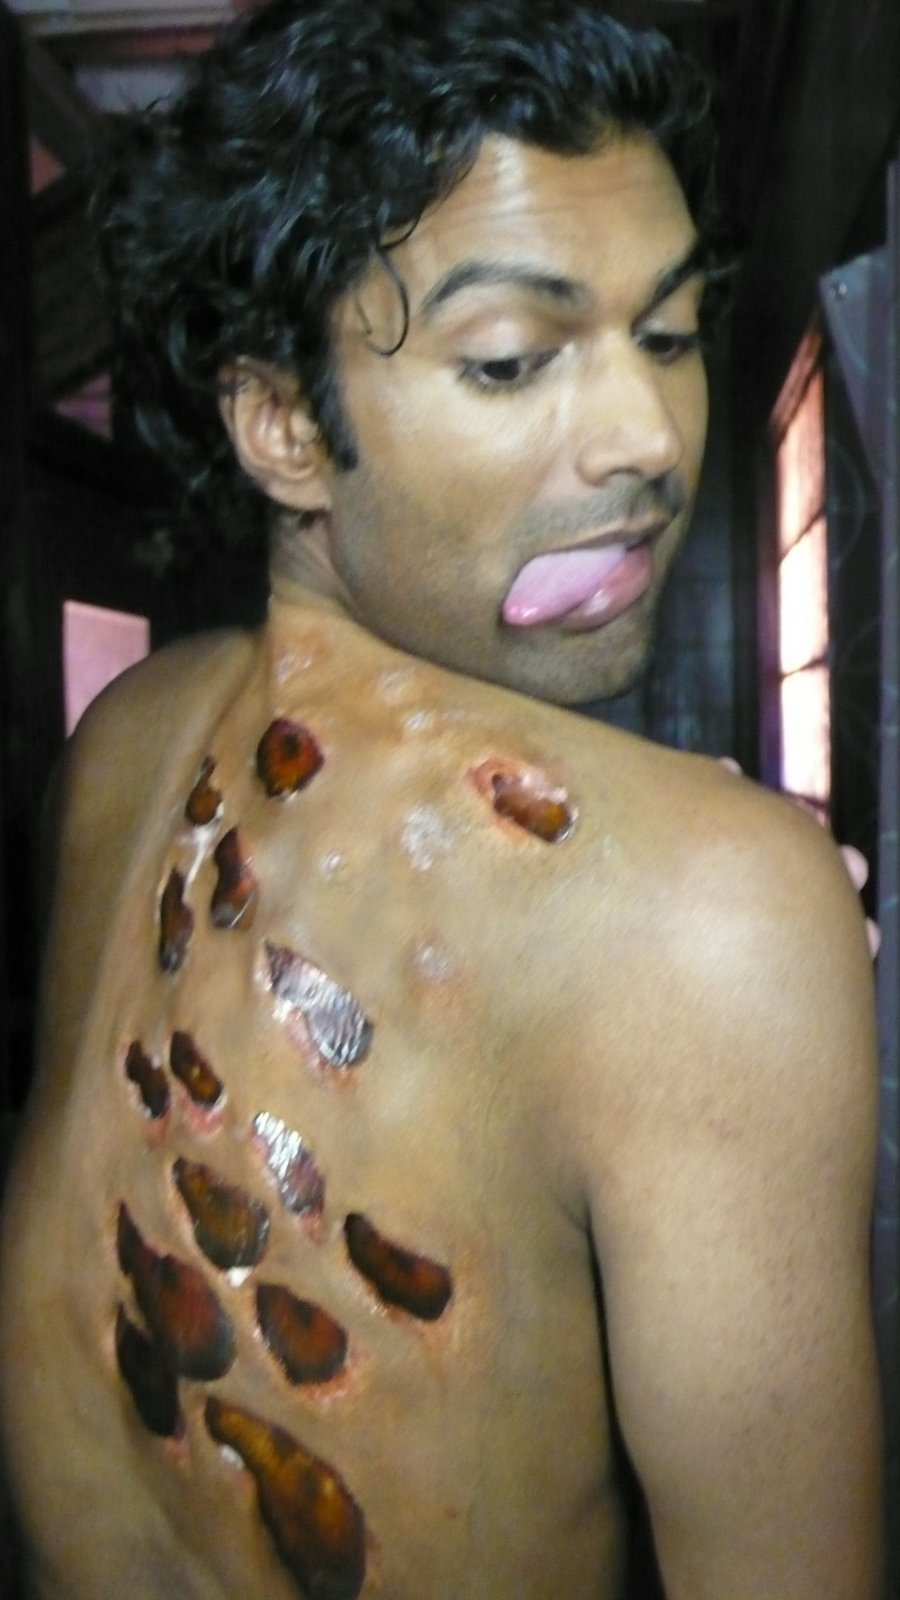 [ep+2+sendhil+examins+the+tasty+morsels+that+have+sprung+up+on+his+back]